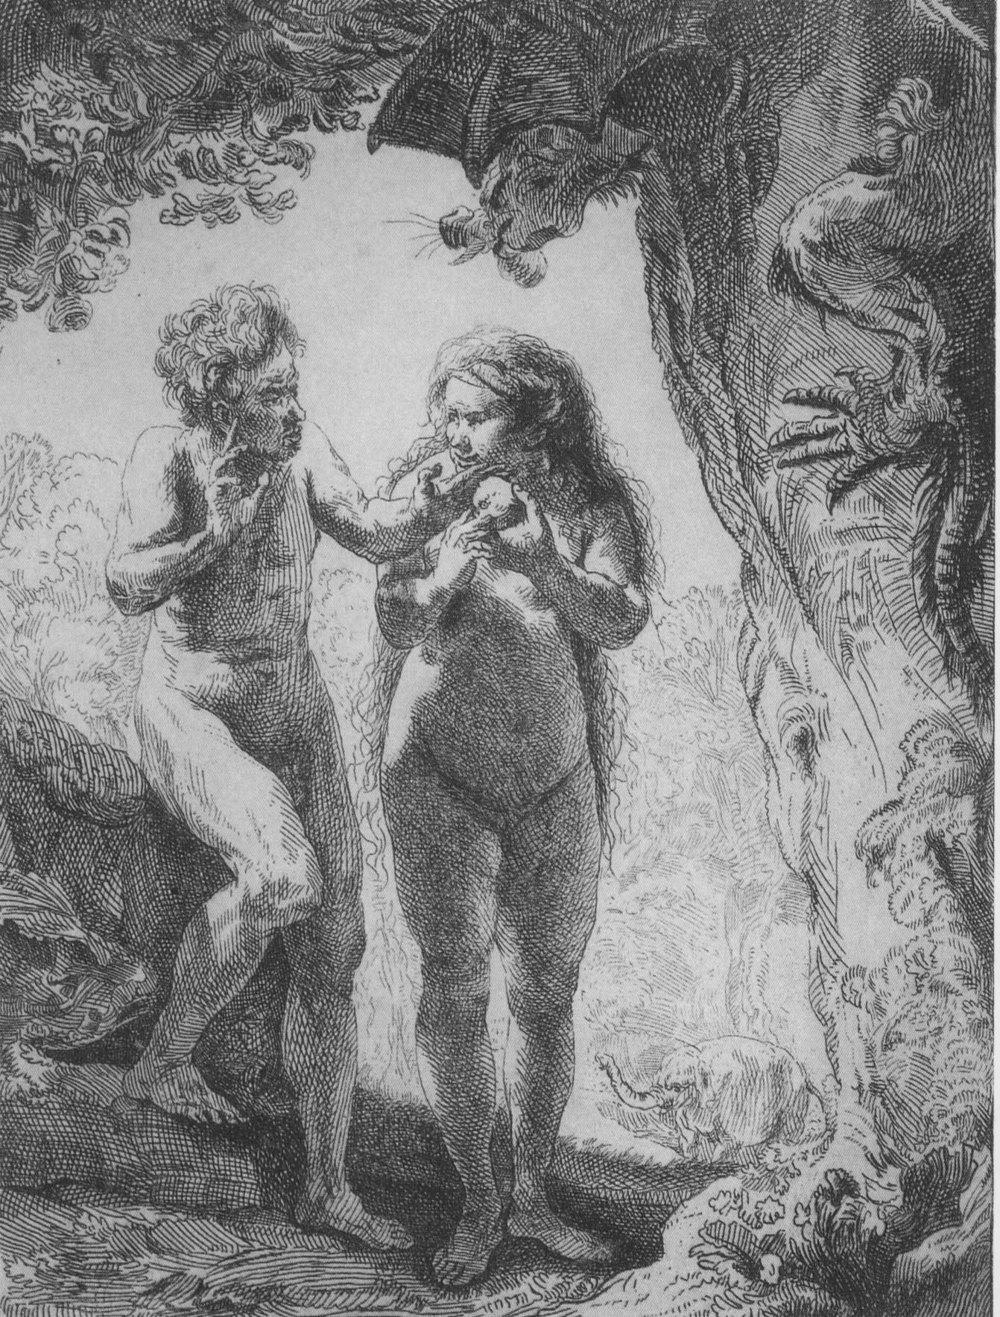 Rembrandt_adam_and_eve_etching.jpg